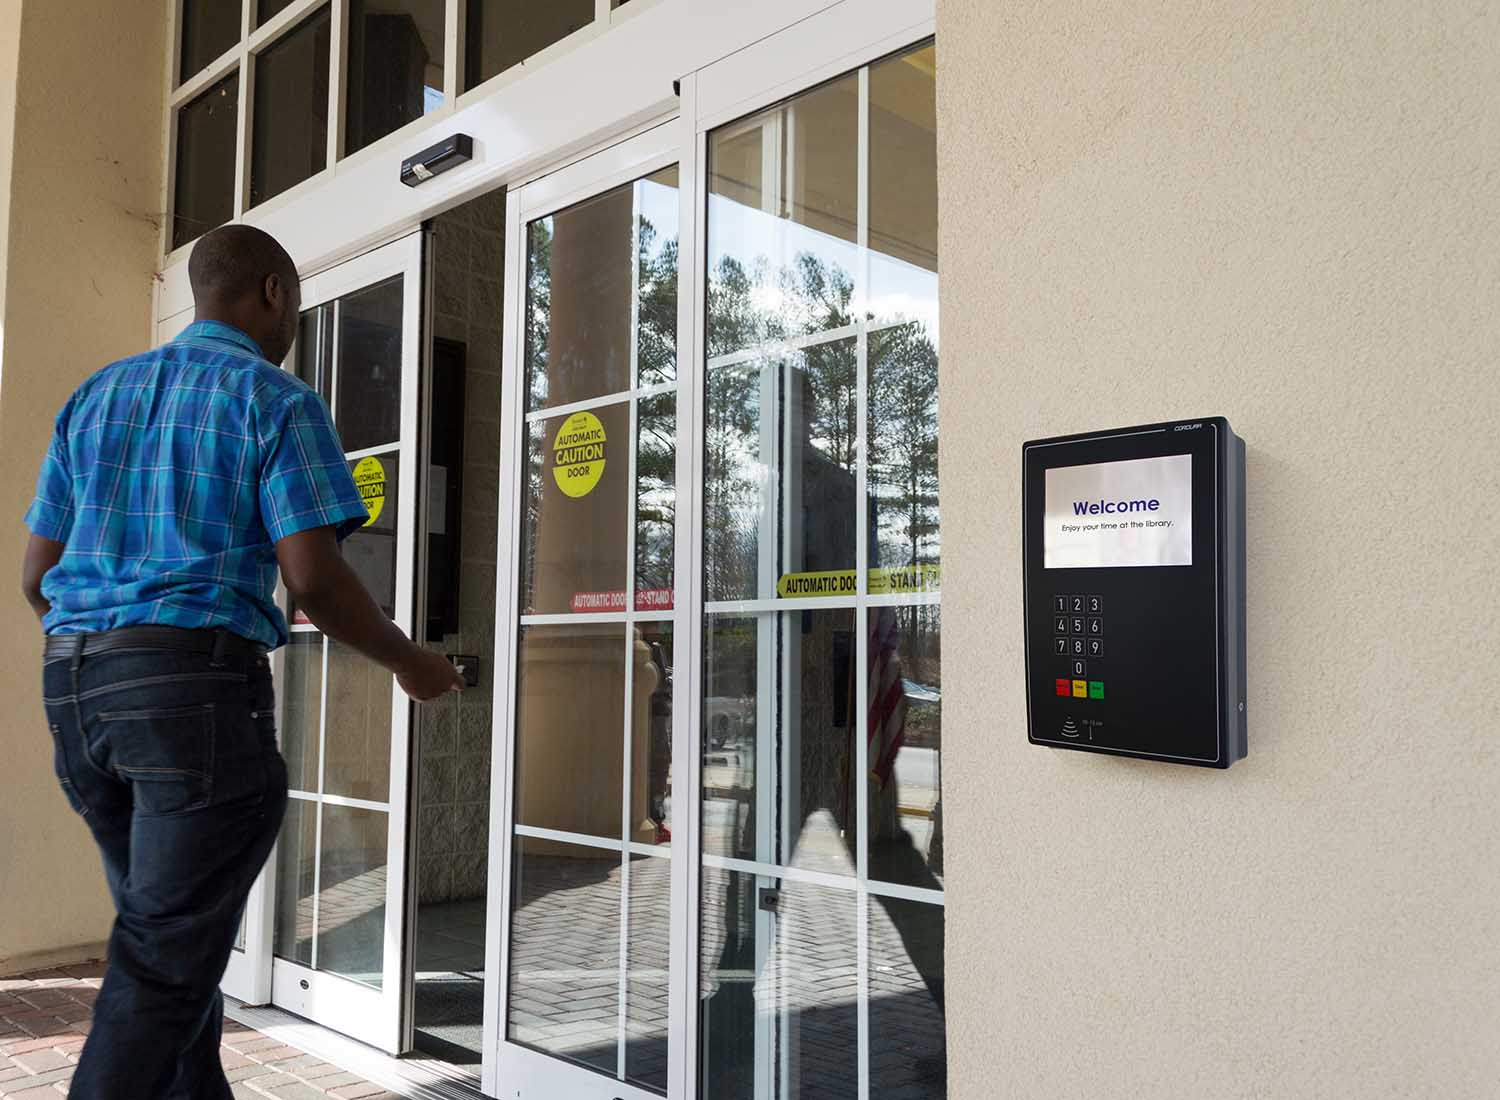 Man entering library with access control panel